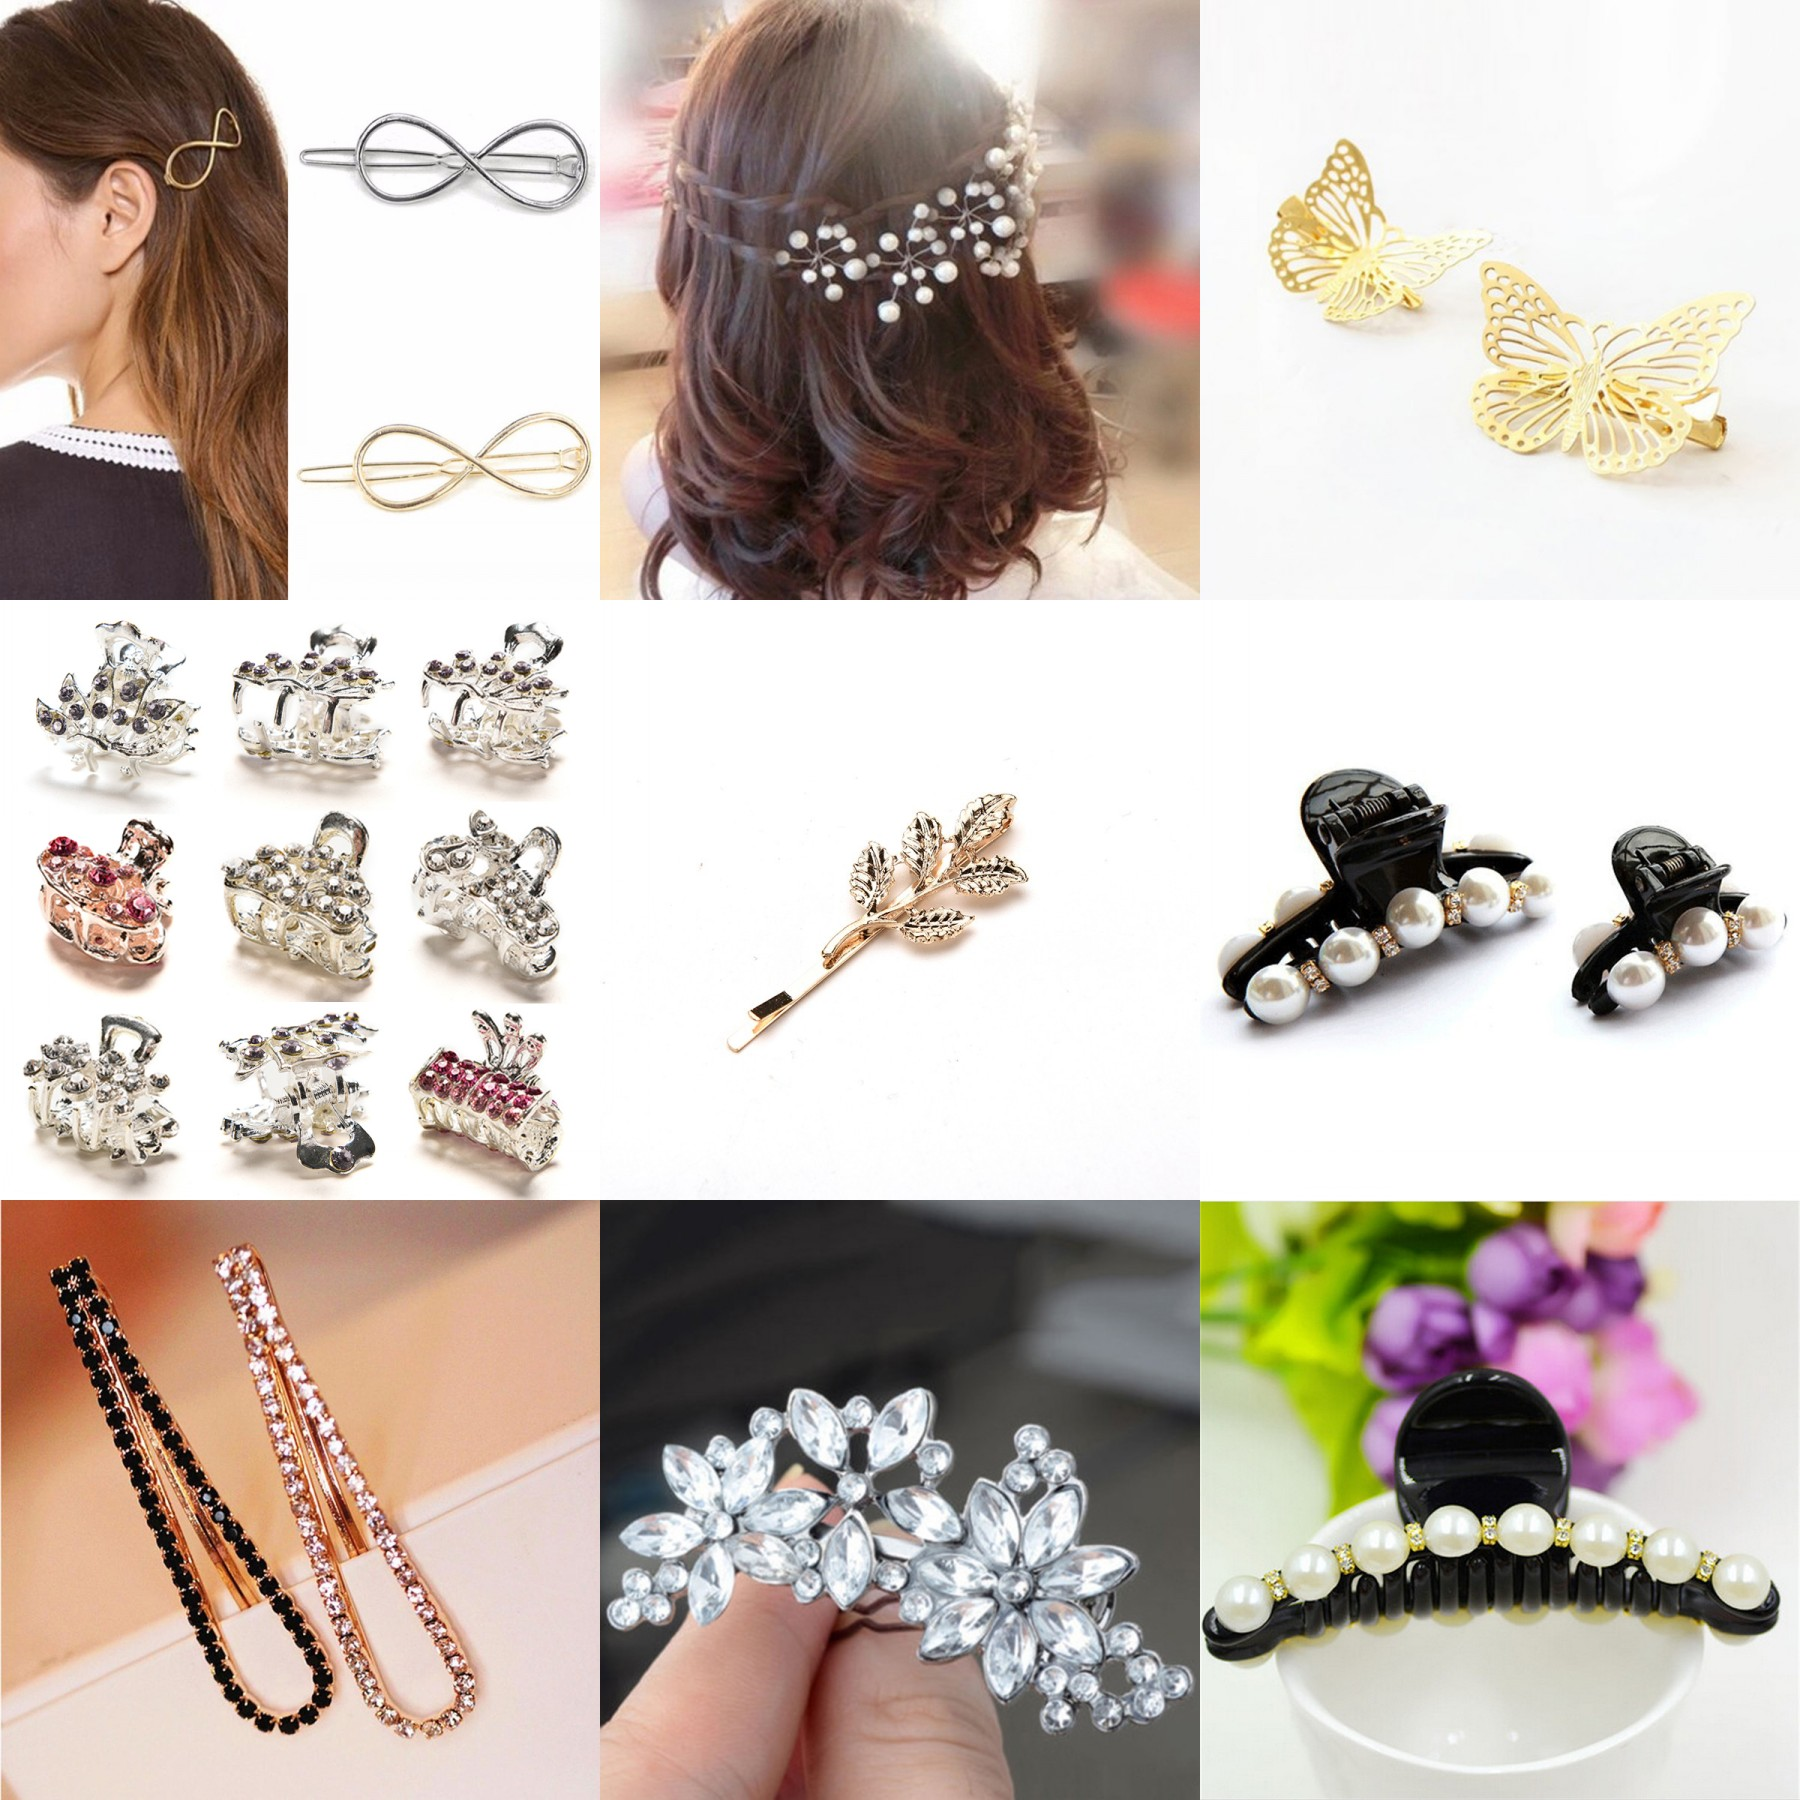 Mini Butterfly Rhinestones Beads Hairgrip Hairpins Hair Accessories Ornaments Barrette Hair Claw Hair Clip For Women Girl